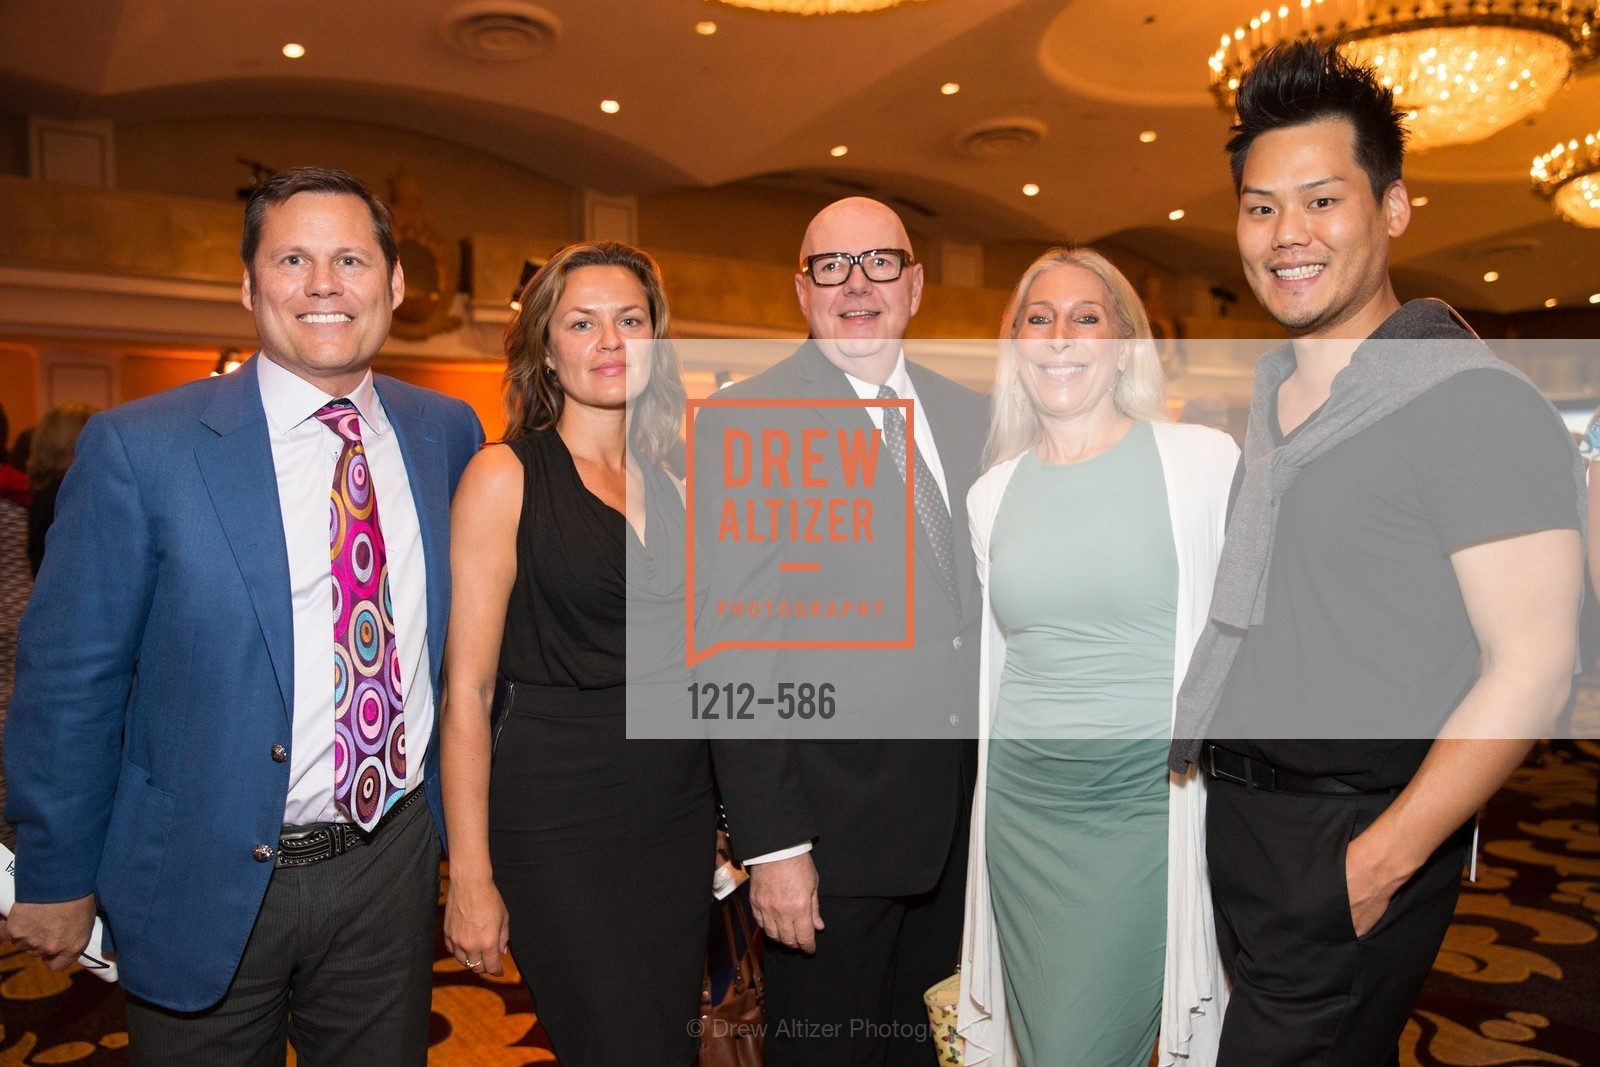 Mark Calvano, Robert Atkinson, Betsy Linder, Christopher Lee, 2014 Bay Area ARTHRITIS AUXILLIARY Benefit & Fashion Show, US, October 2nd, 2014,Drew Altizer, Drew Altizer Photography, full-service event agency, private events, San Francisco photographer, photographer California